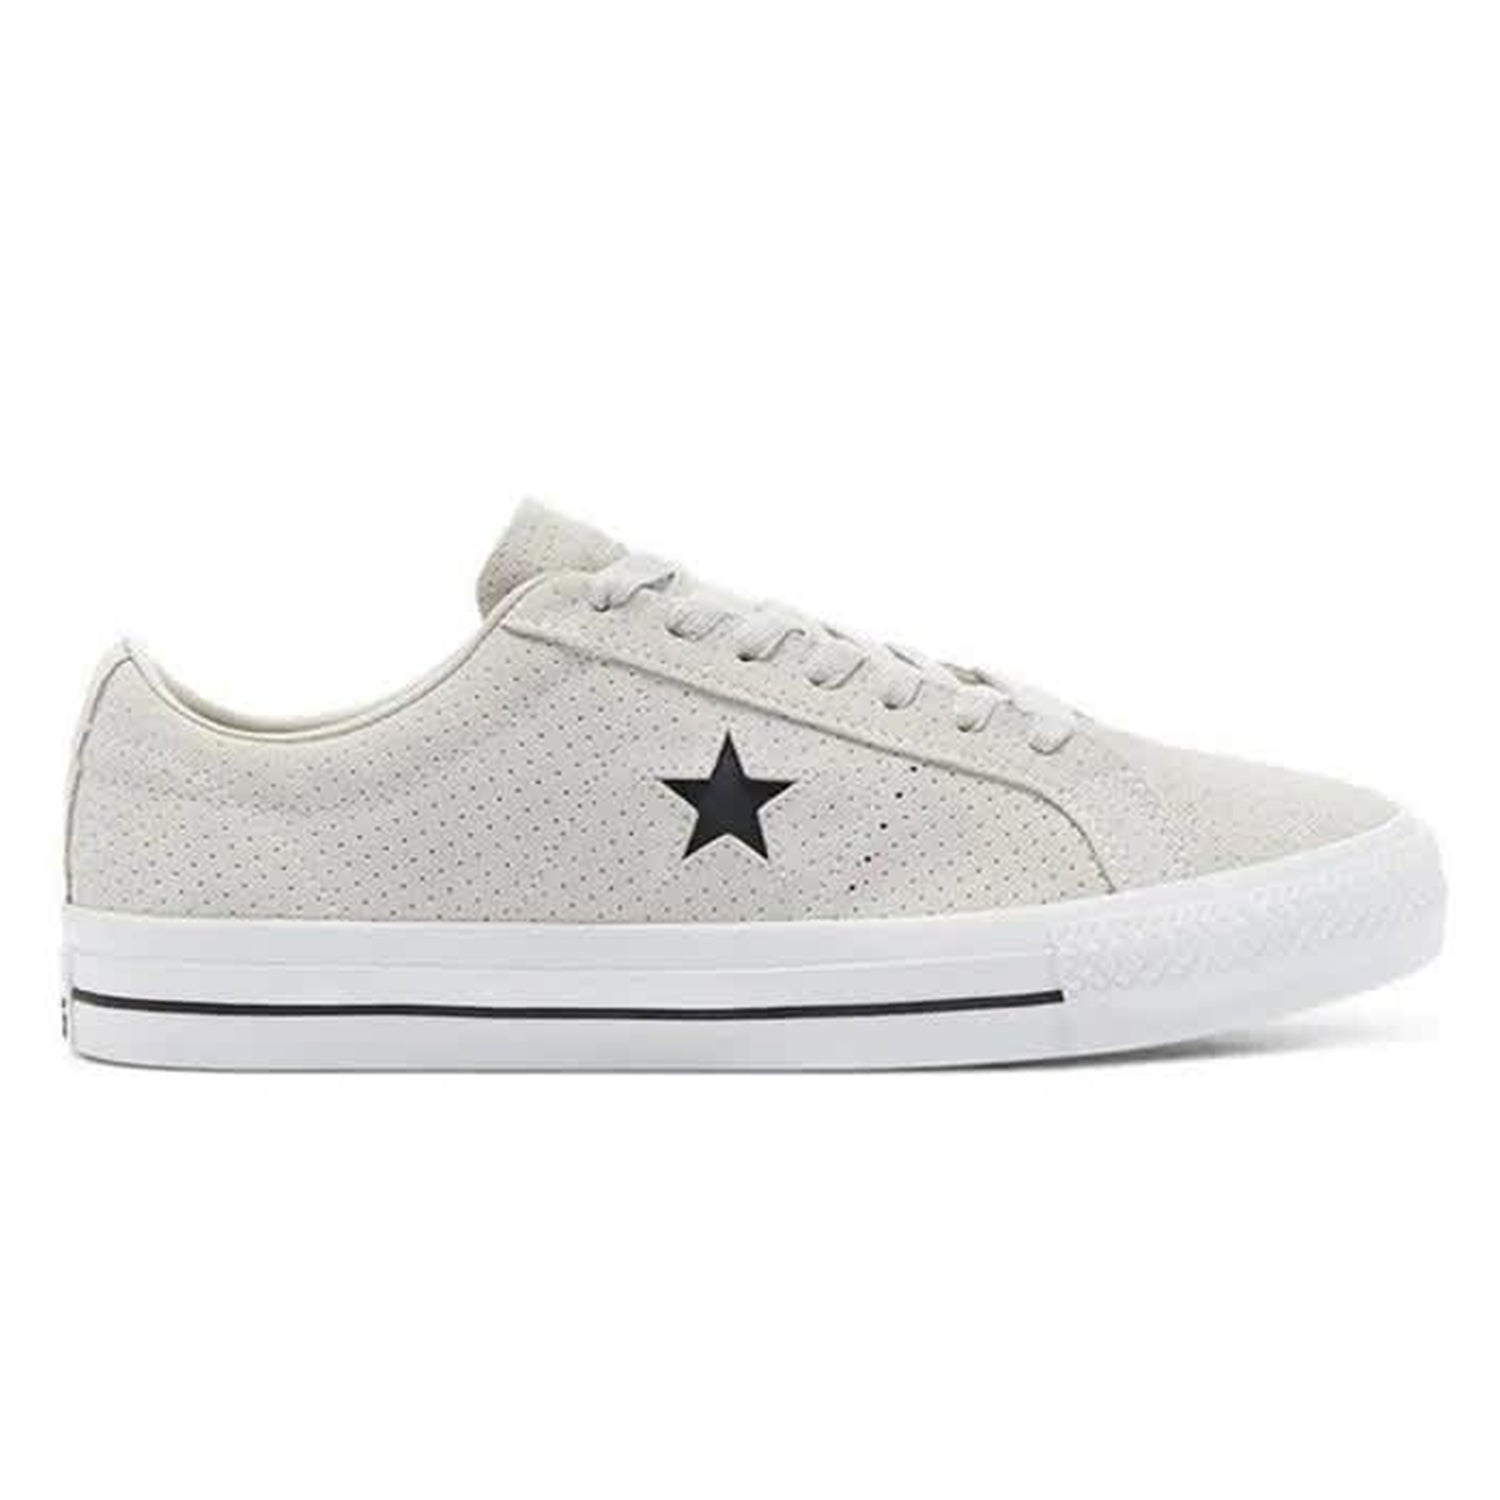 Converse CONS One Star Pro OX Pale Putty/White